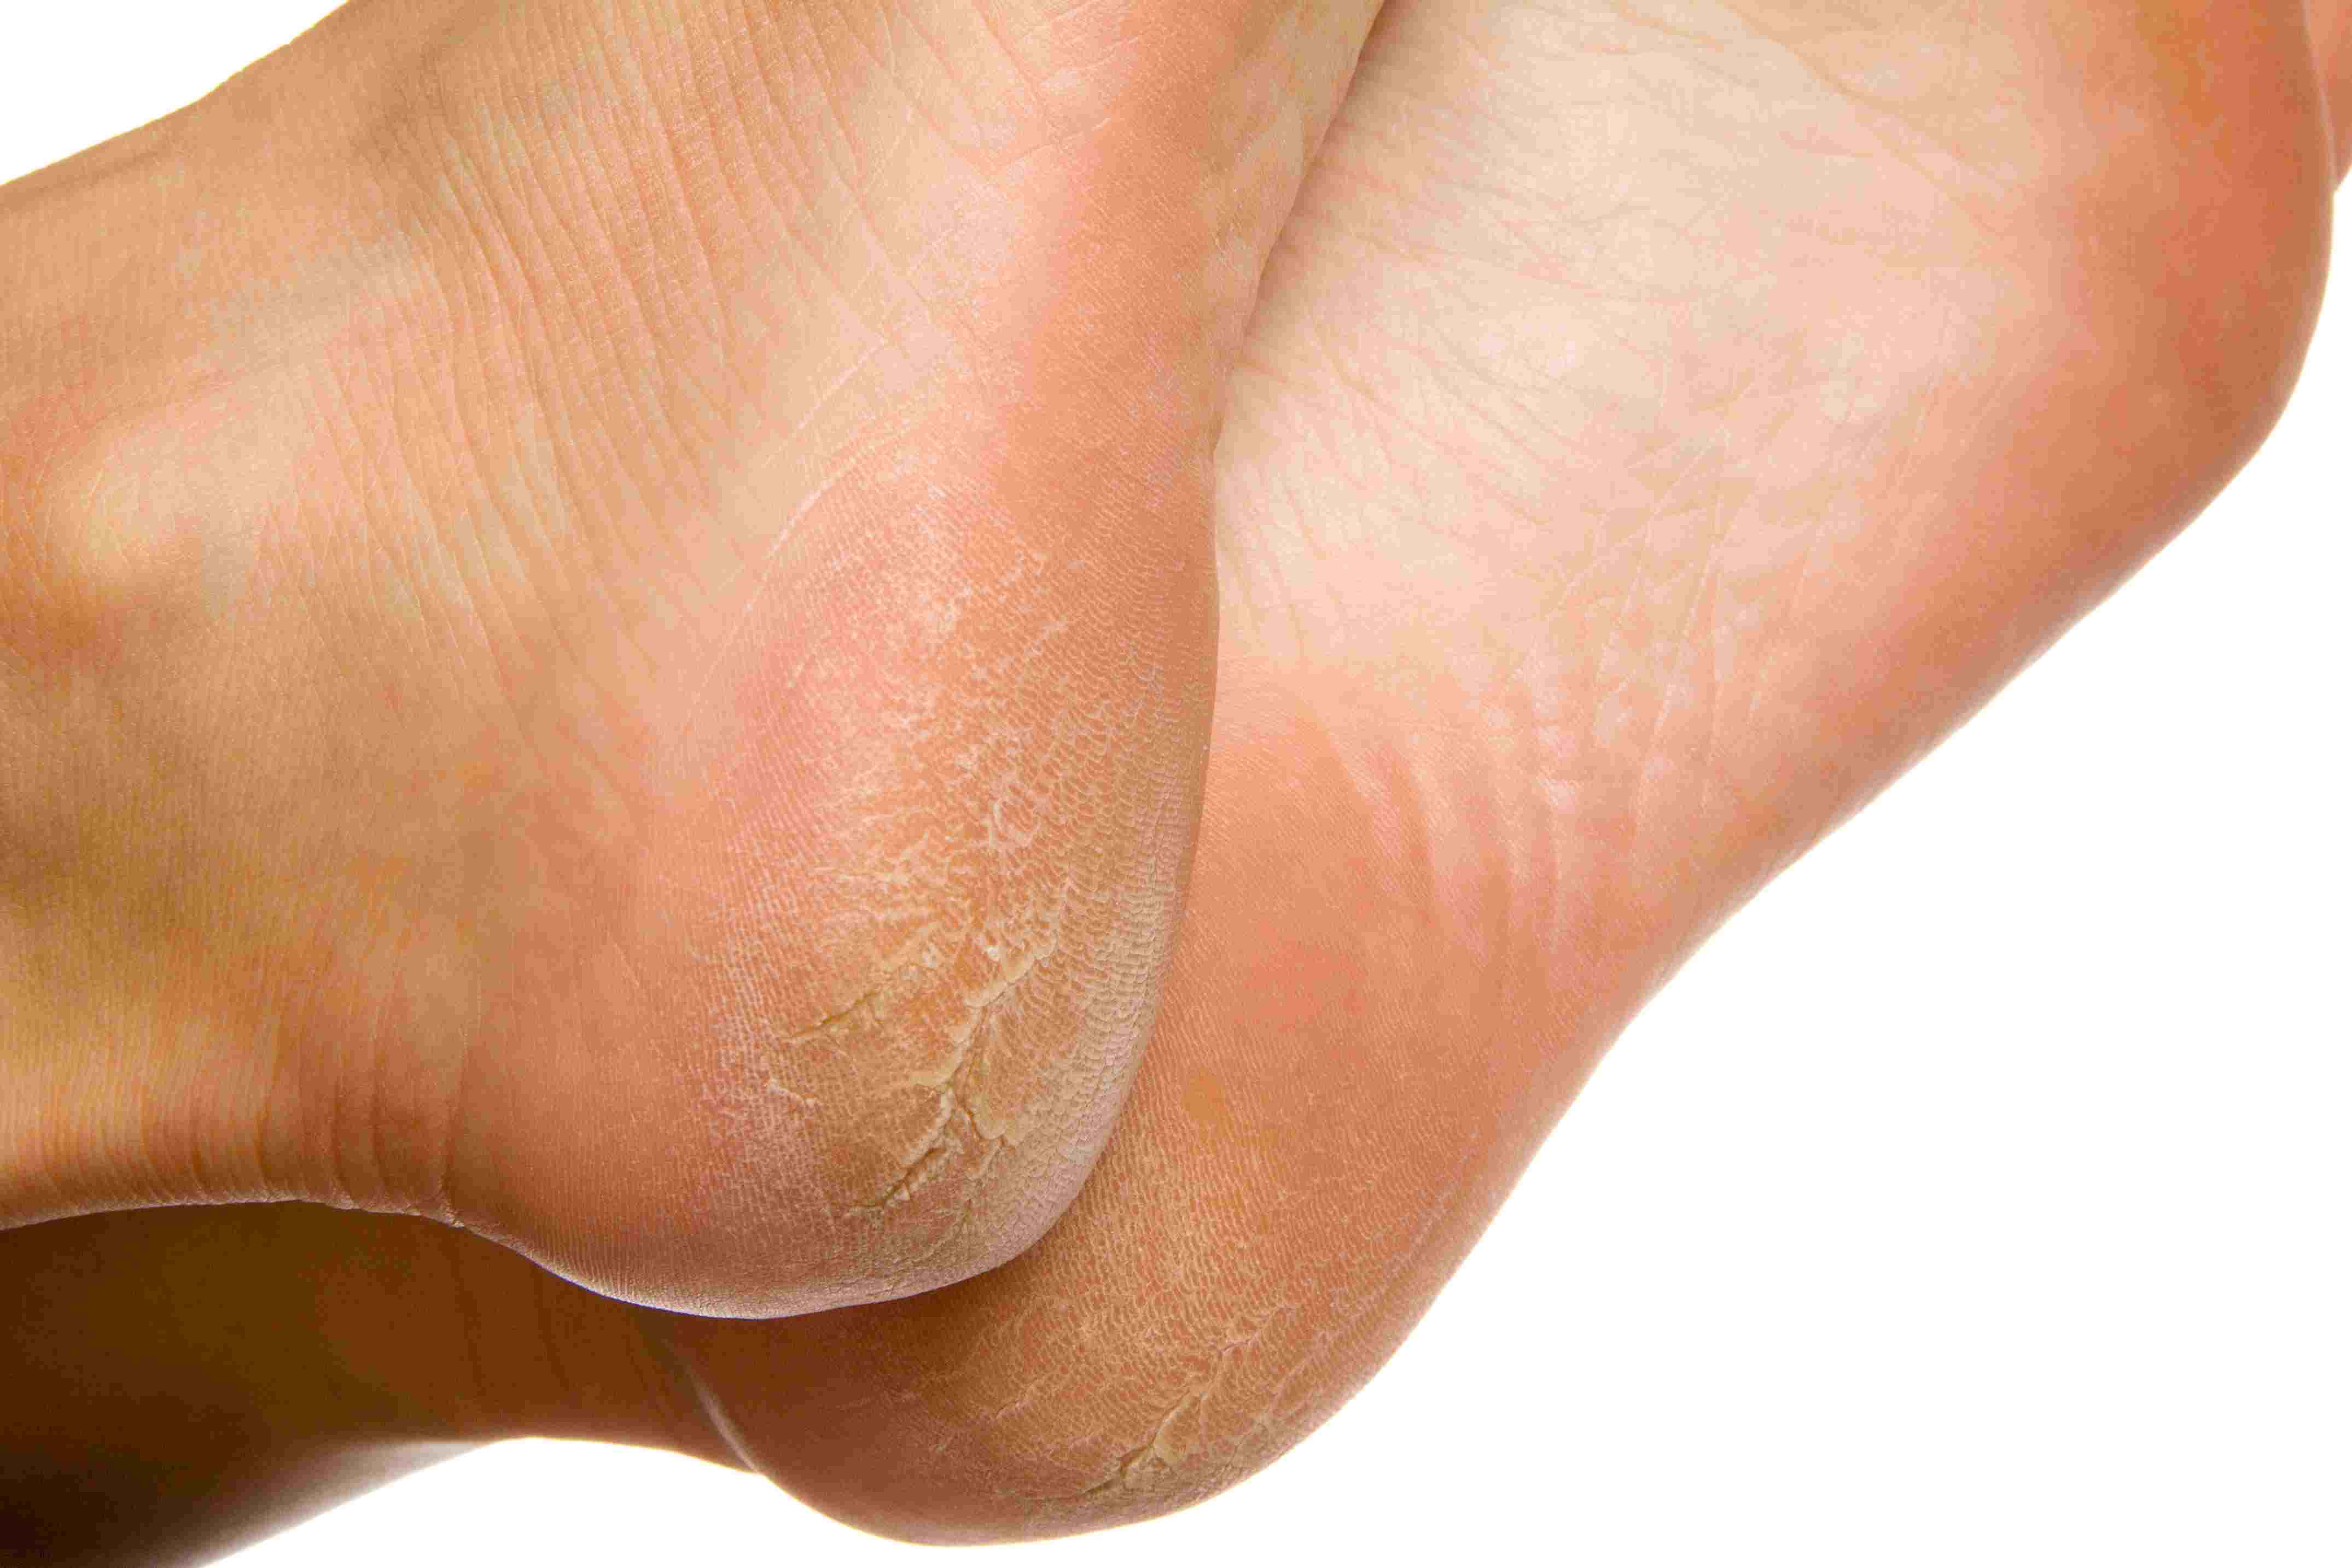 HPV o necunoscuta? - Hpv that causes warts on feet